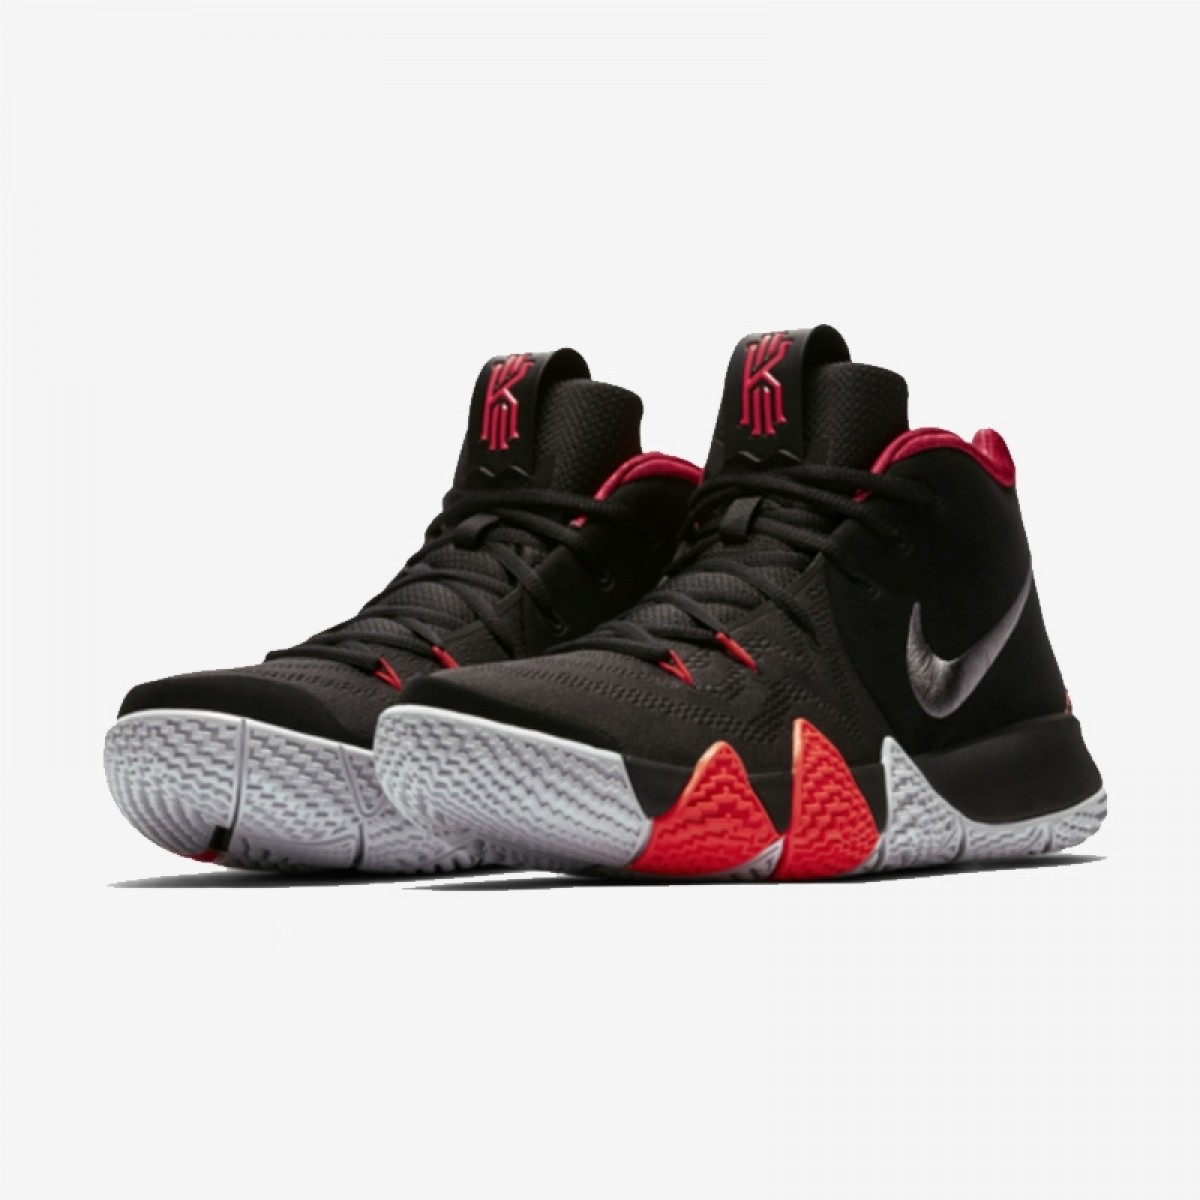 Nike Kyrie 4 '41 for the Ages' 943806-005